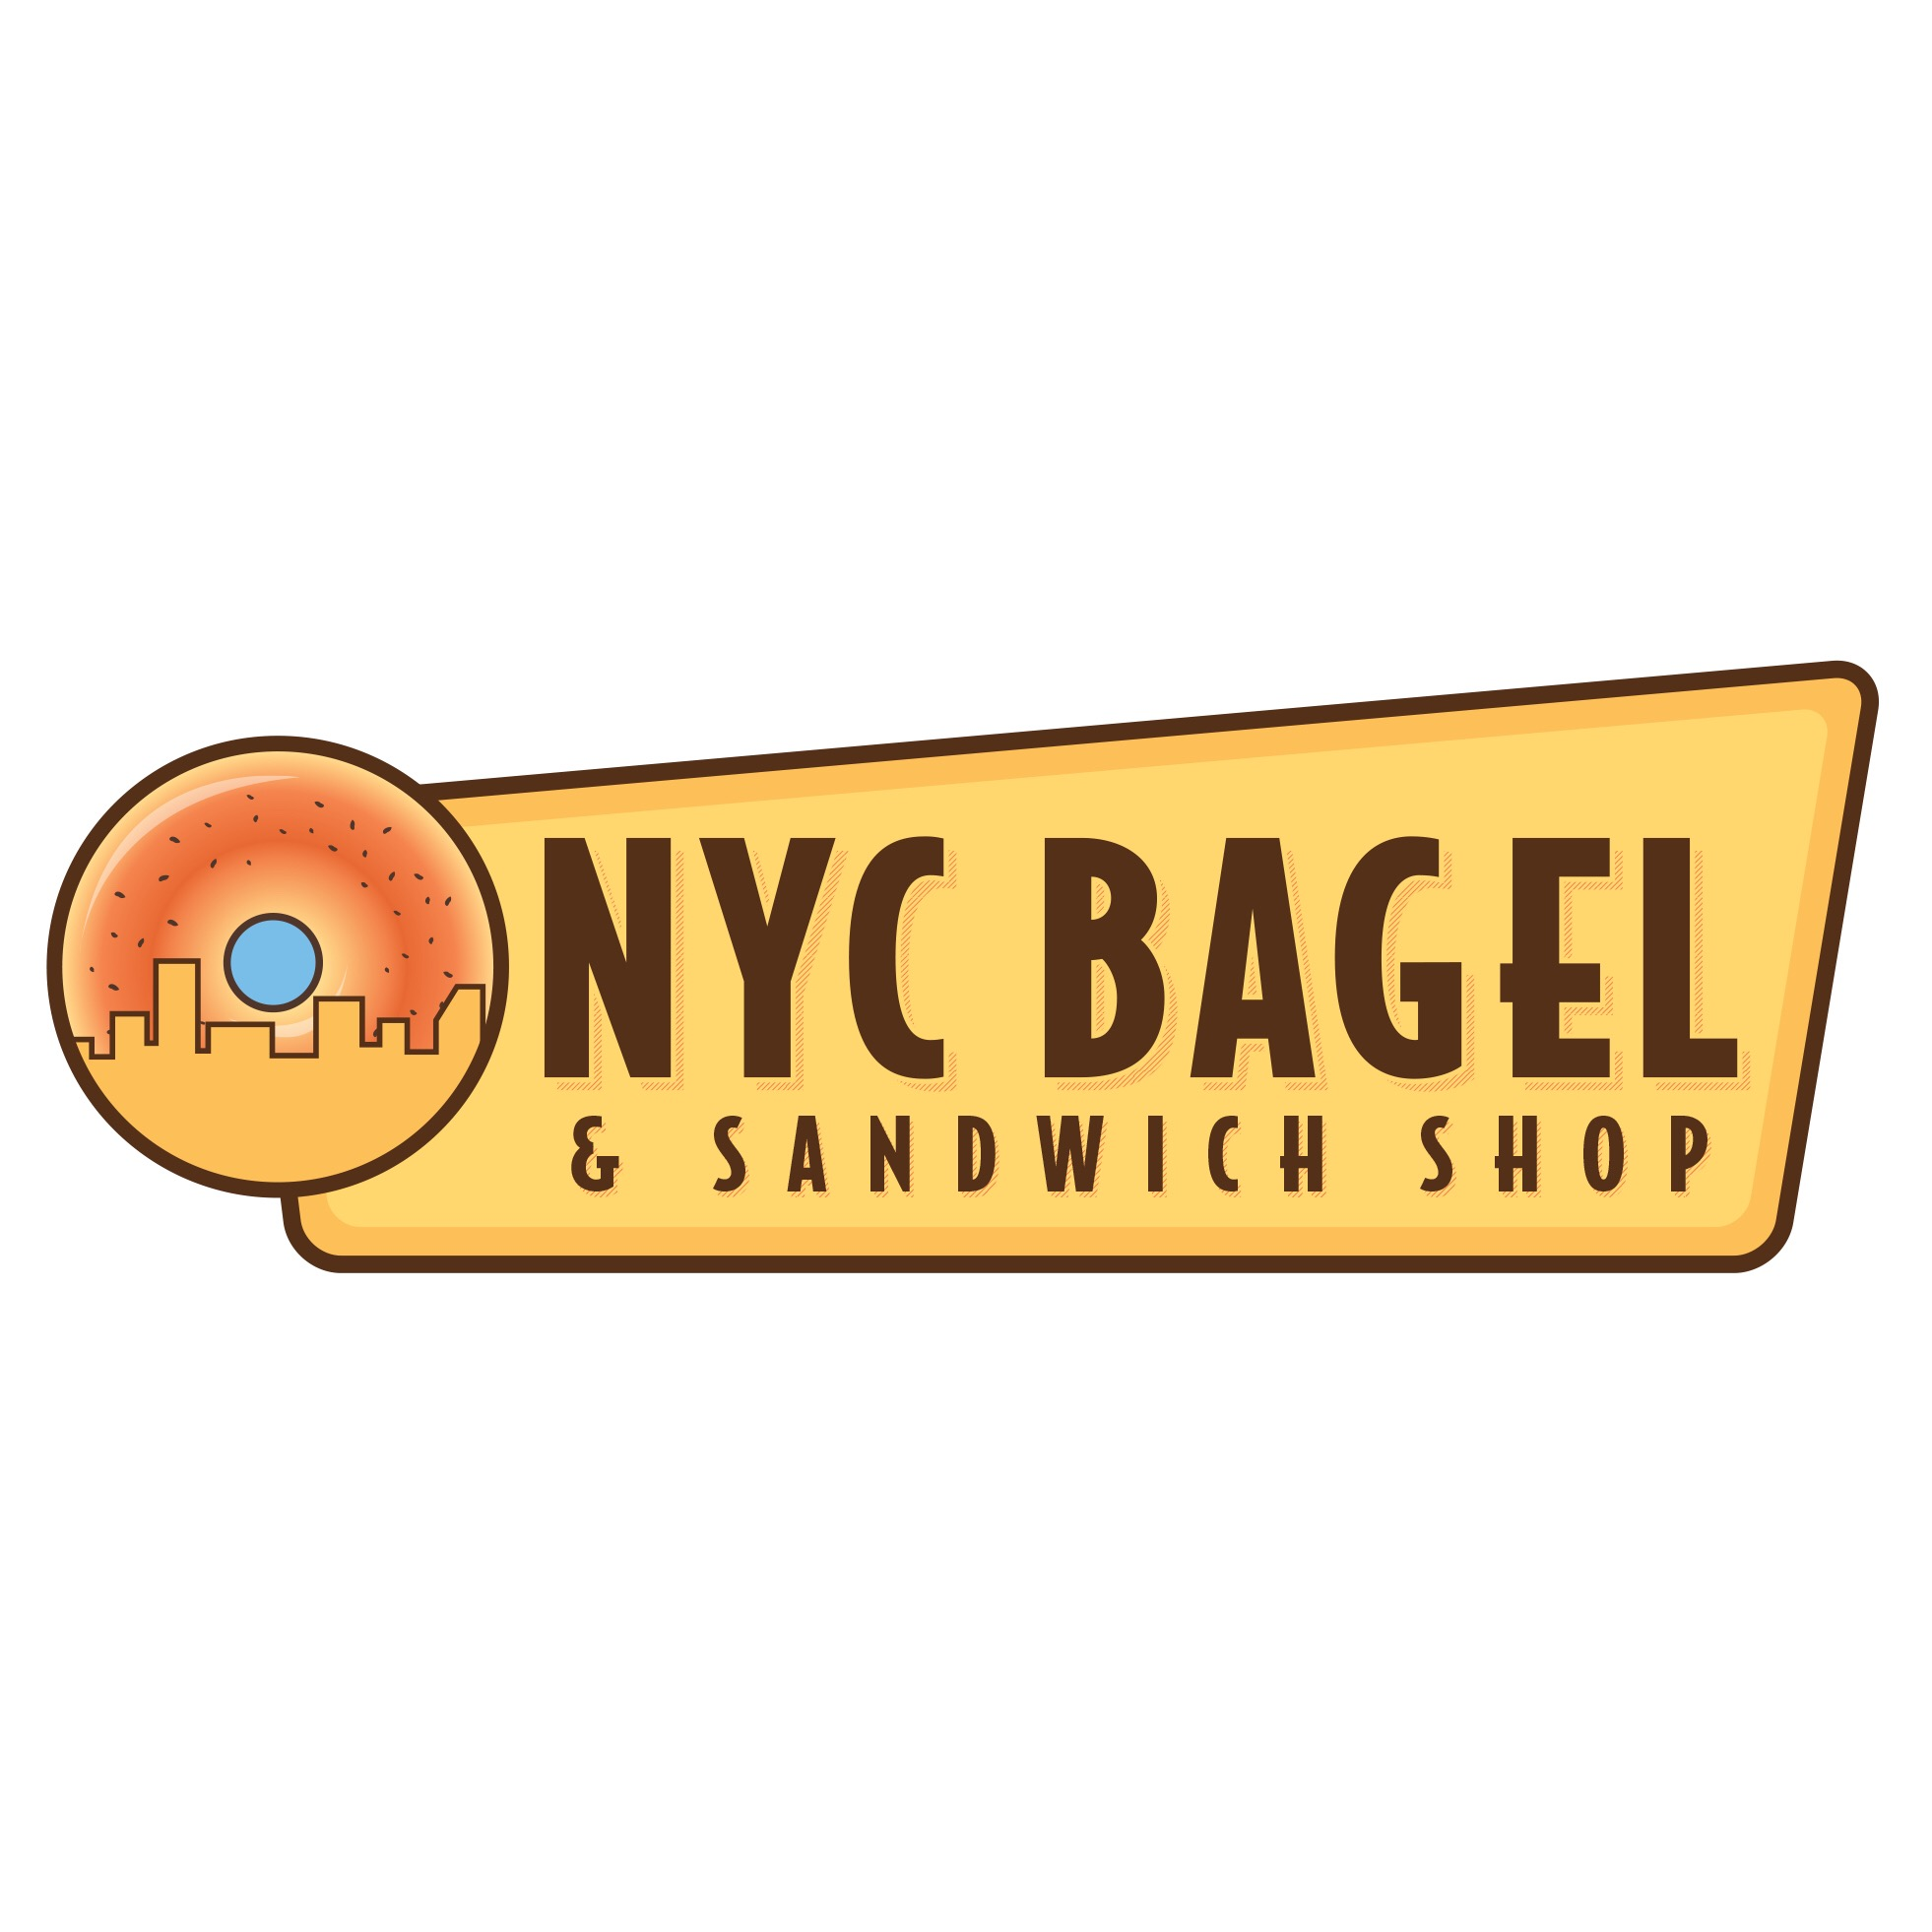 NYC Bagel Franchise, NYC Bagel Franchise Reviews, NYC Bagel and Sandwich Shop Franchise